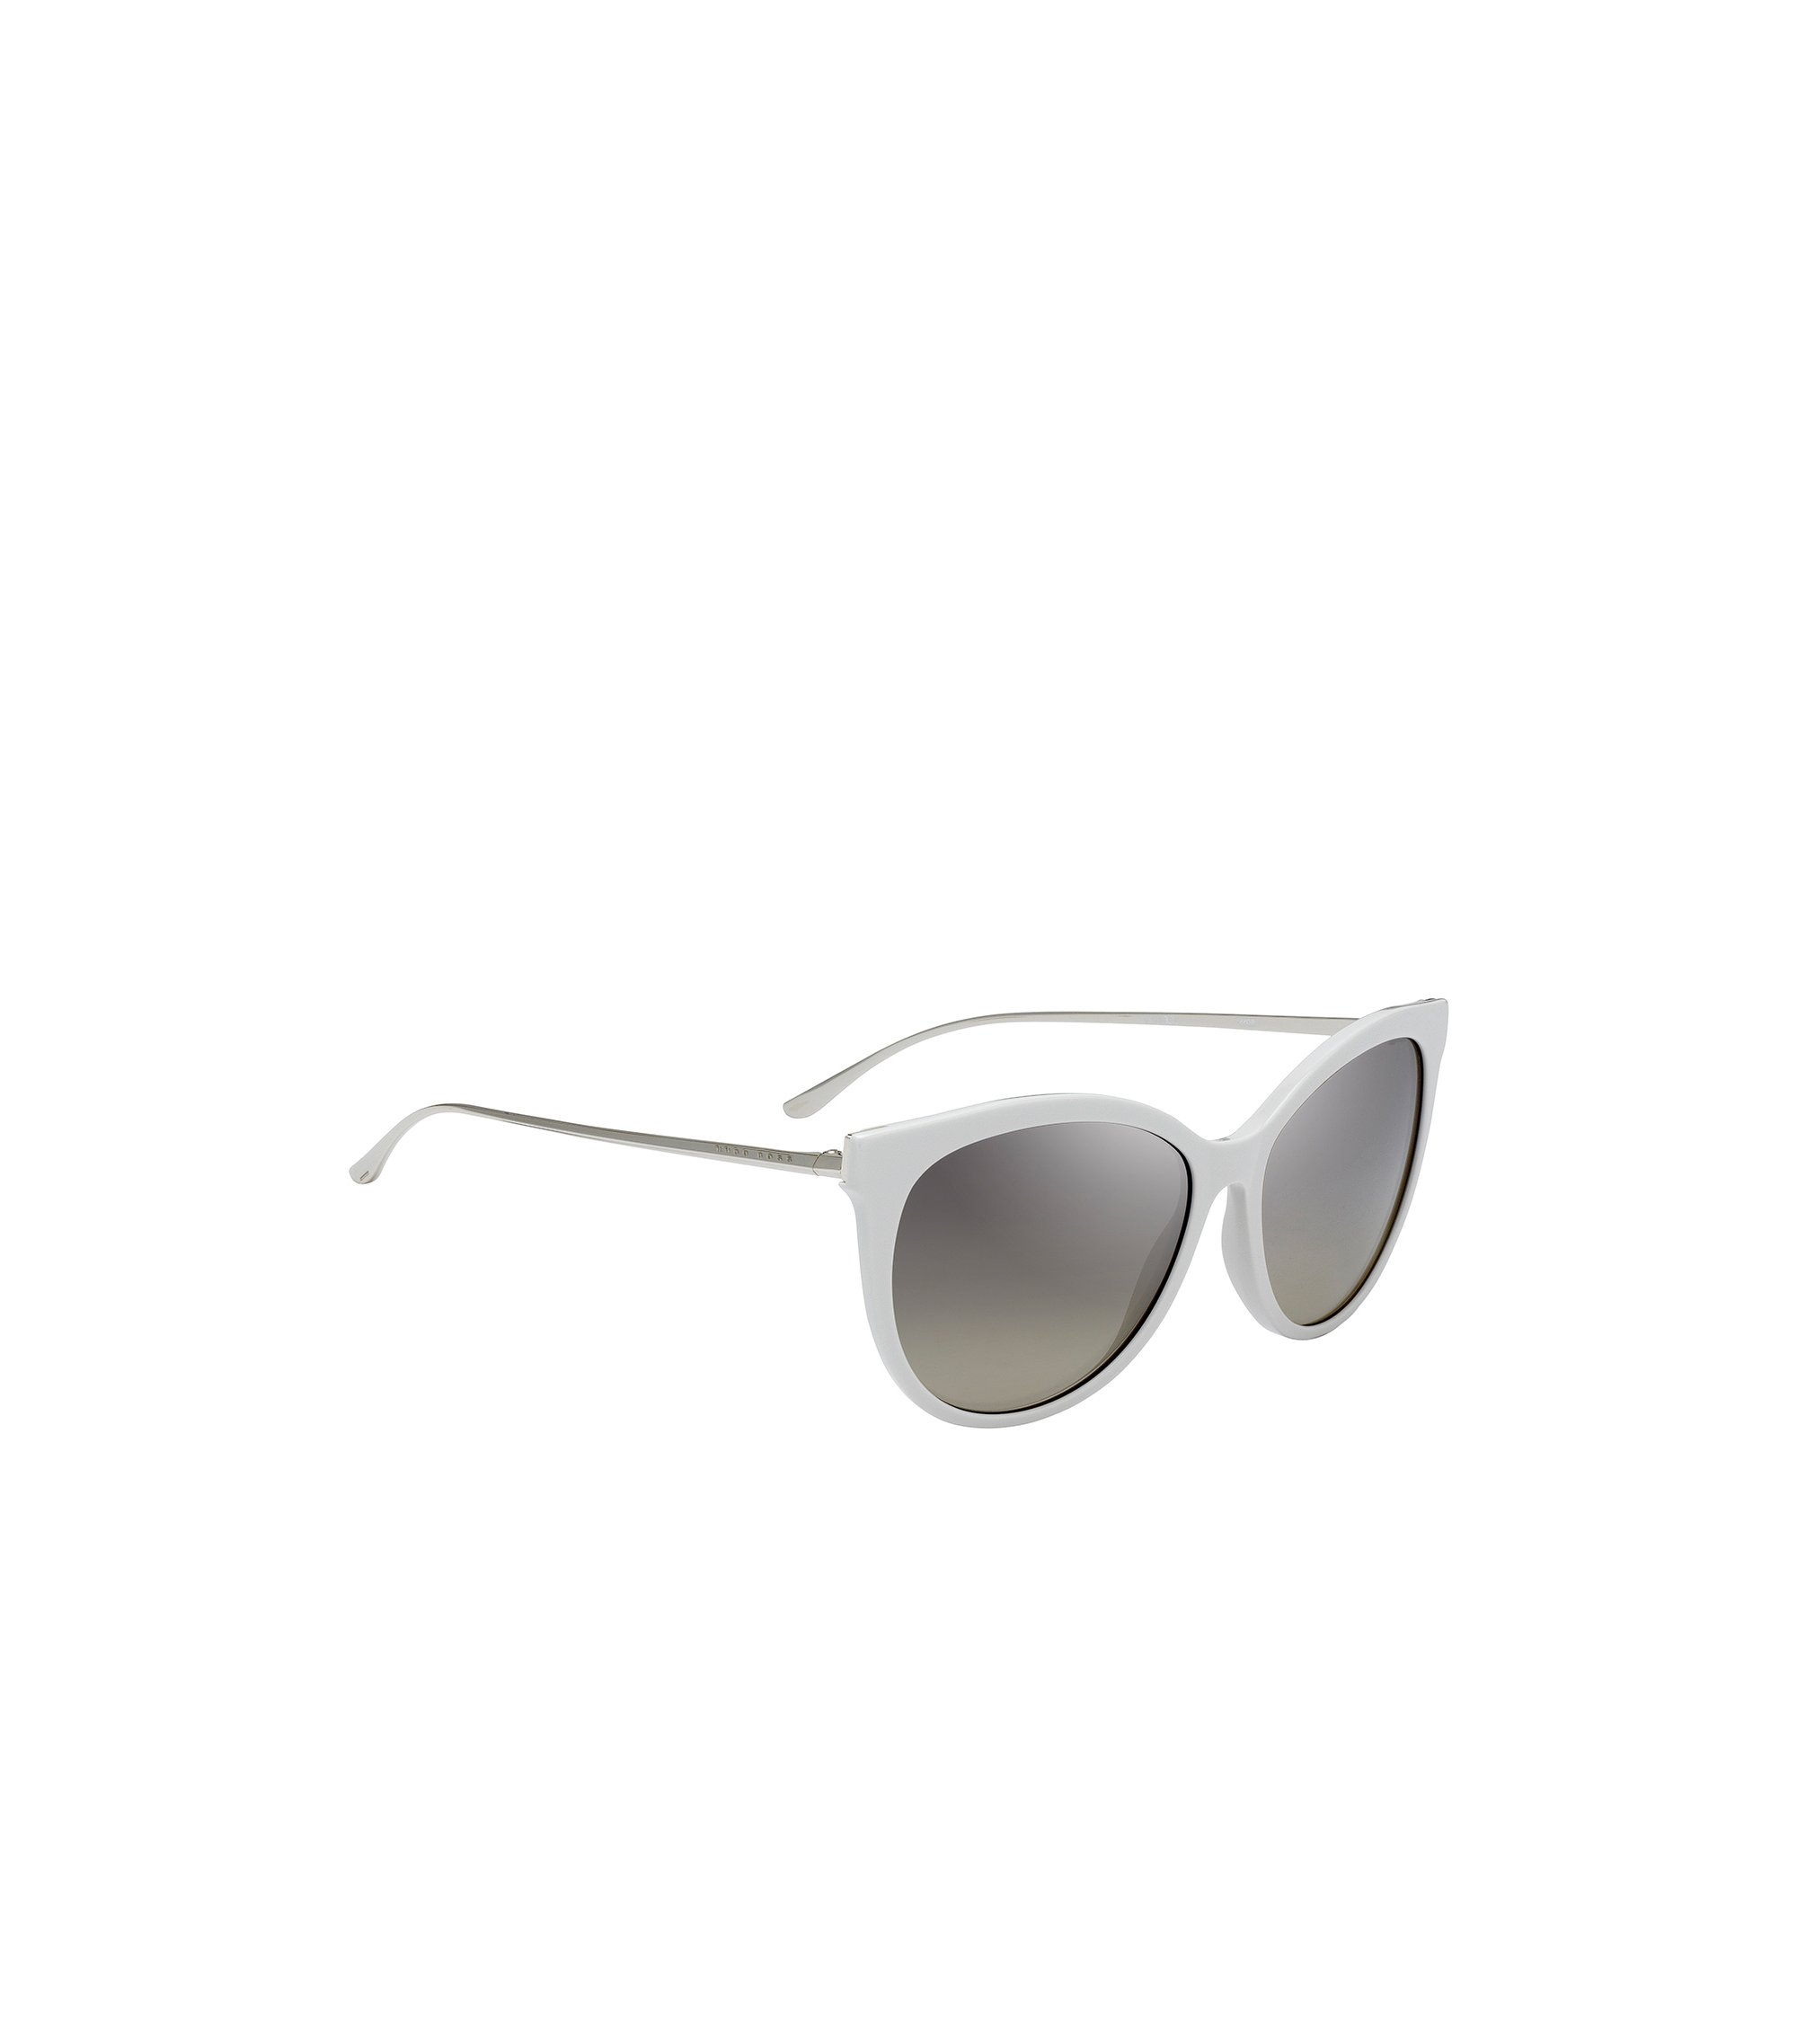 White Cat-Eye Sunglasses | BOSS 0892S, Assorted-Pre-Pack